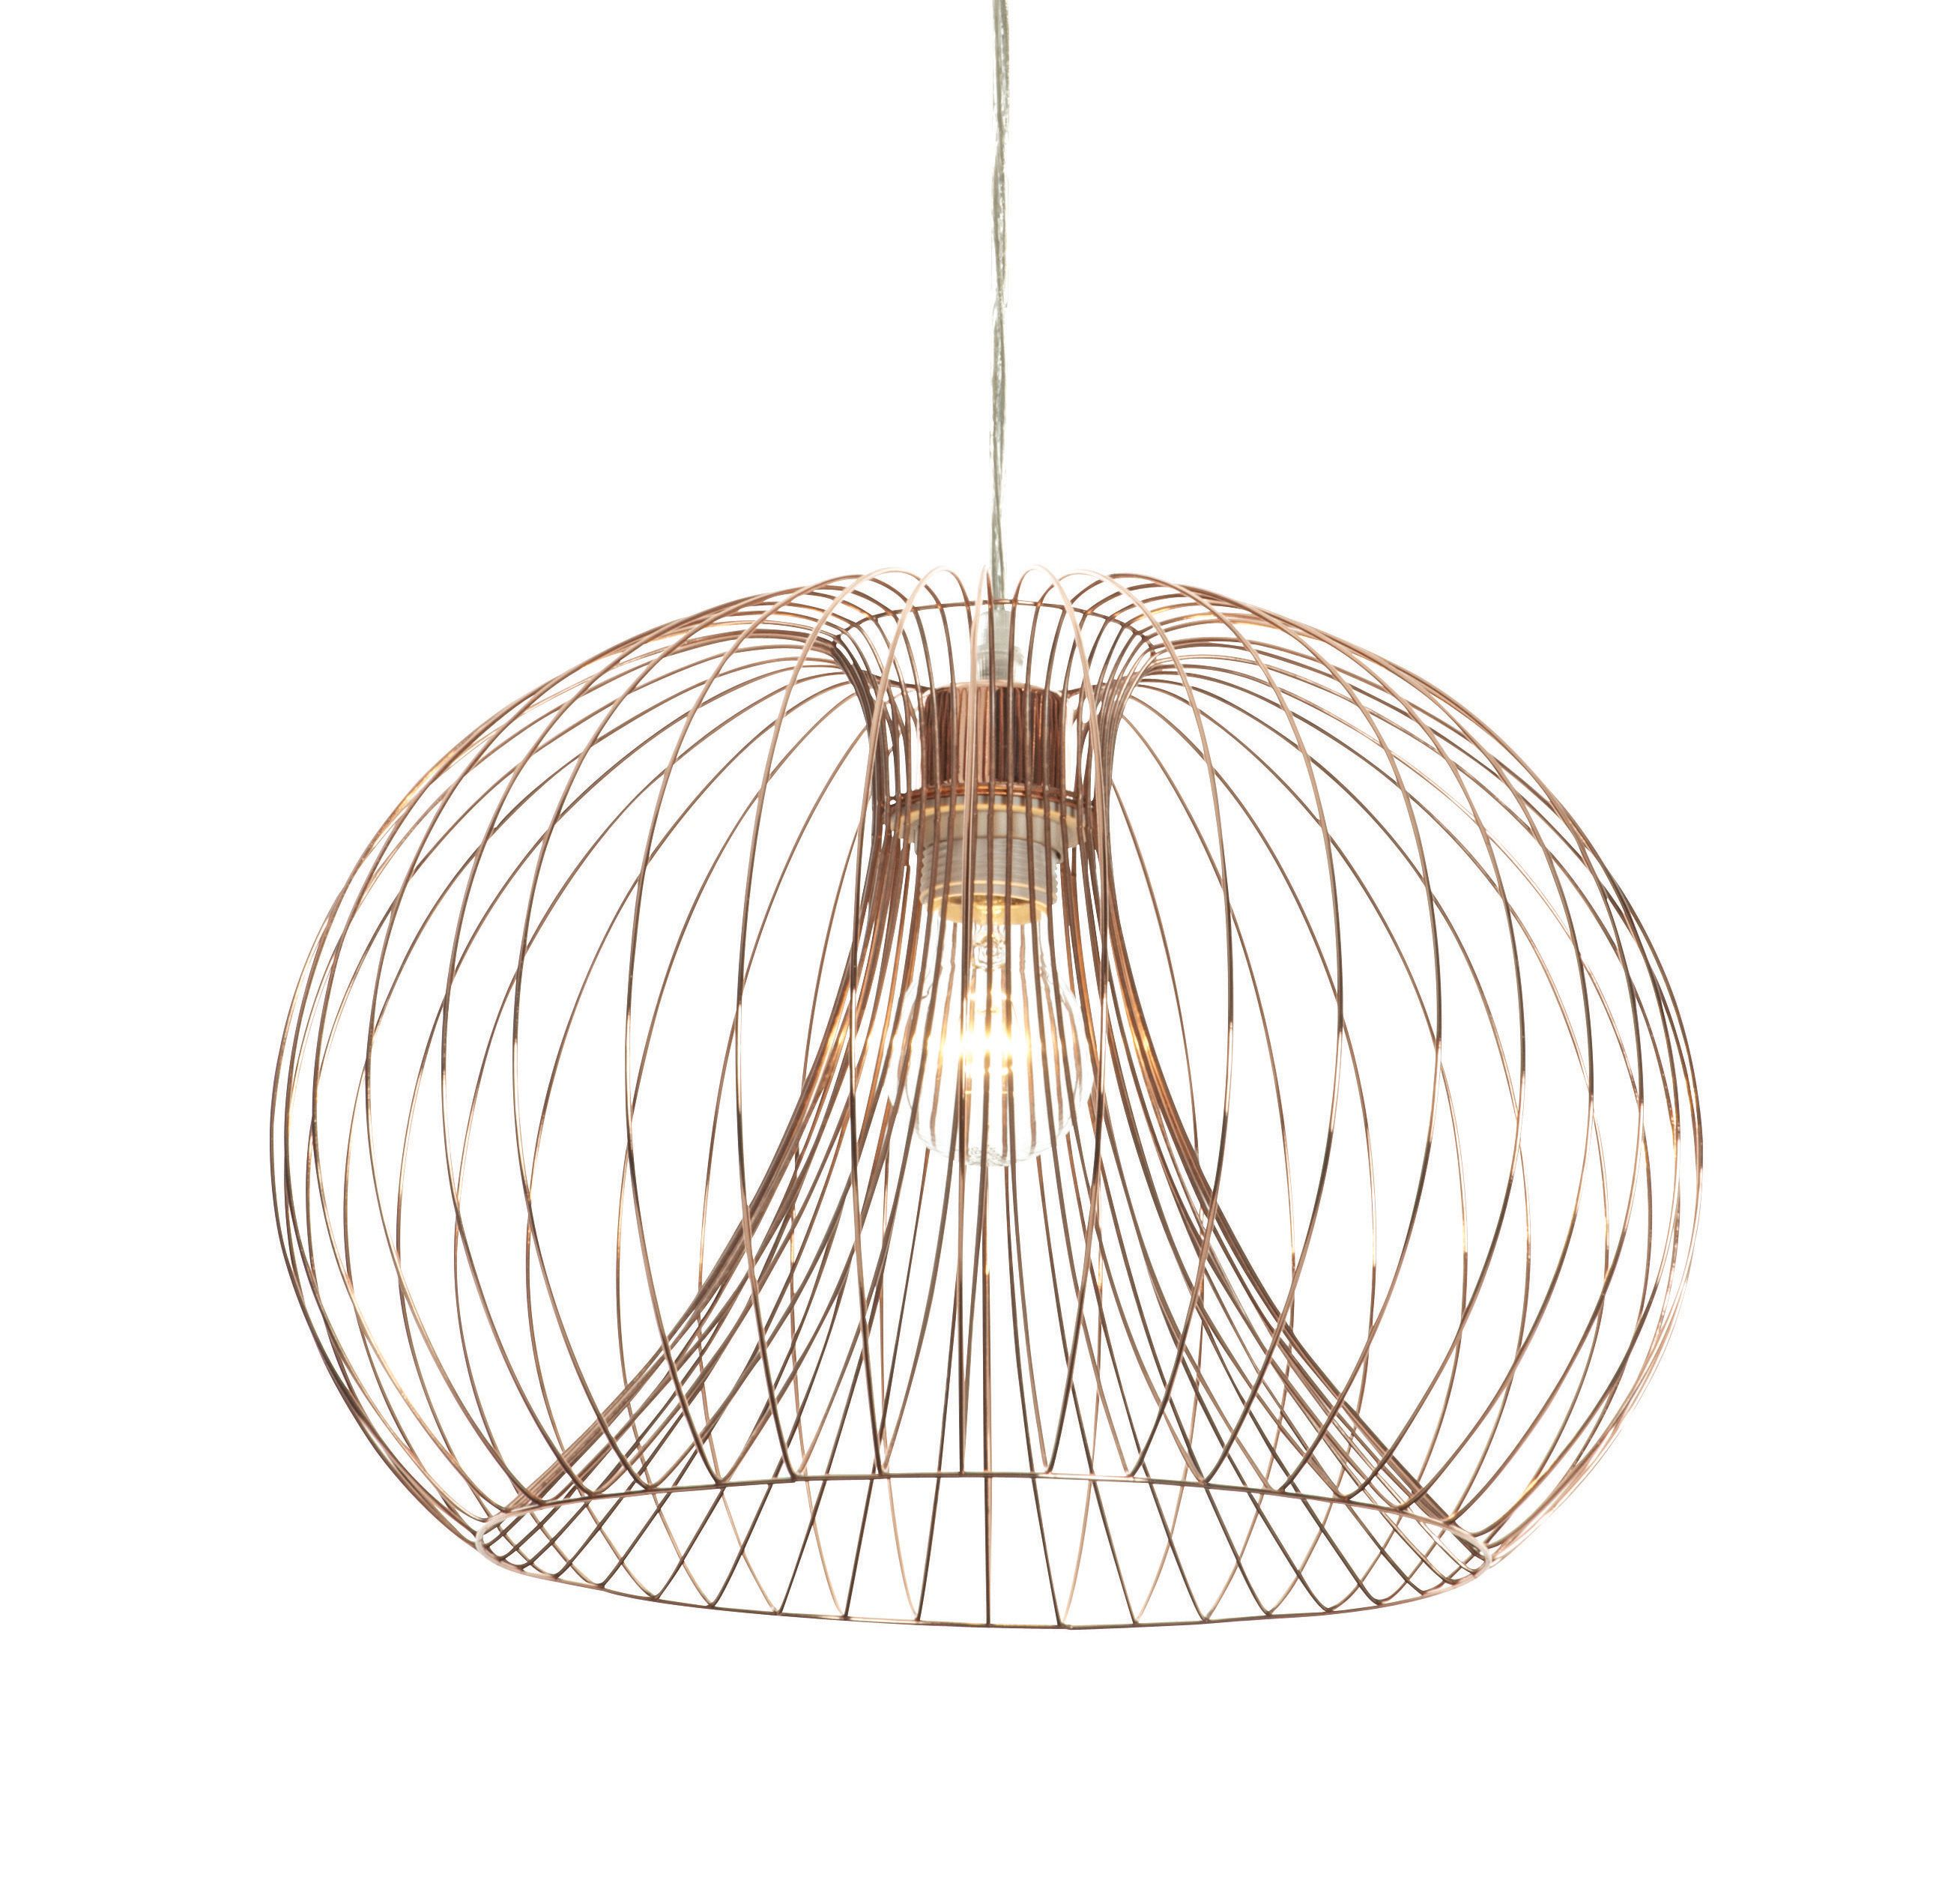 Pendant Light Bulb Wiring : Marceau wire grey pendant ceiling light departments